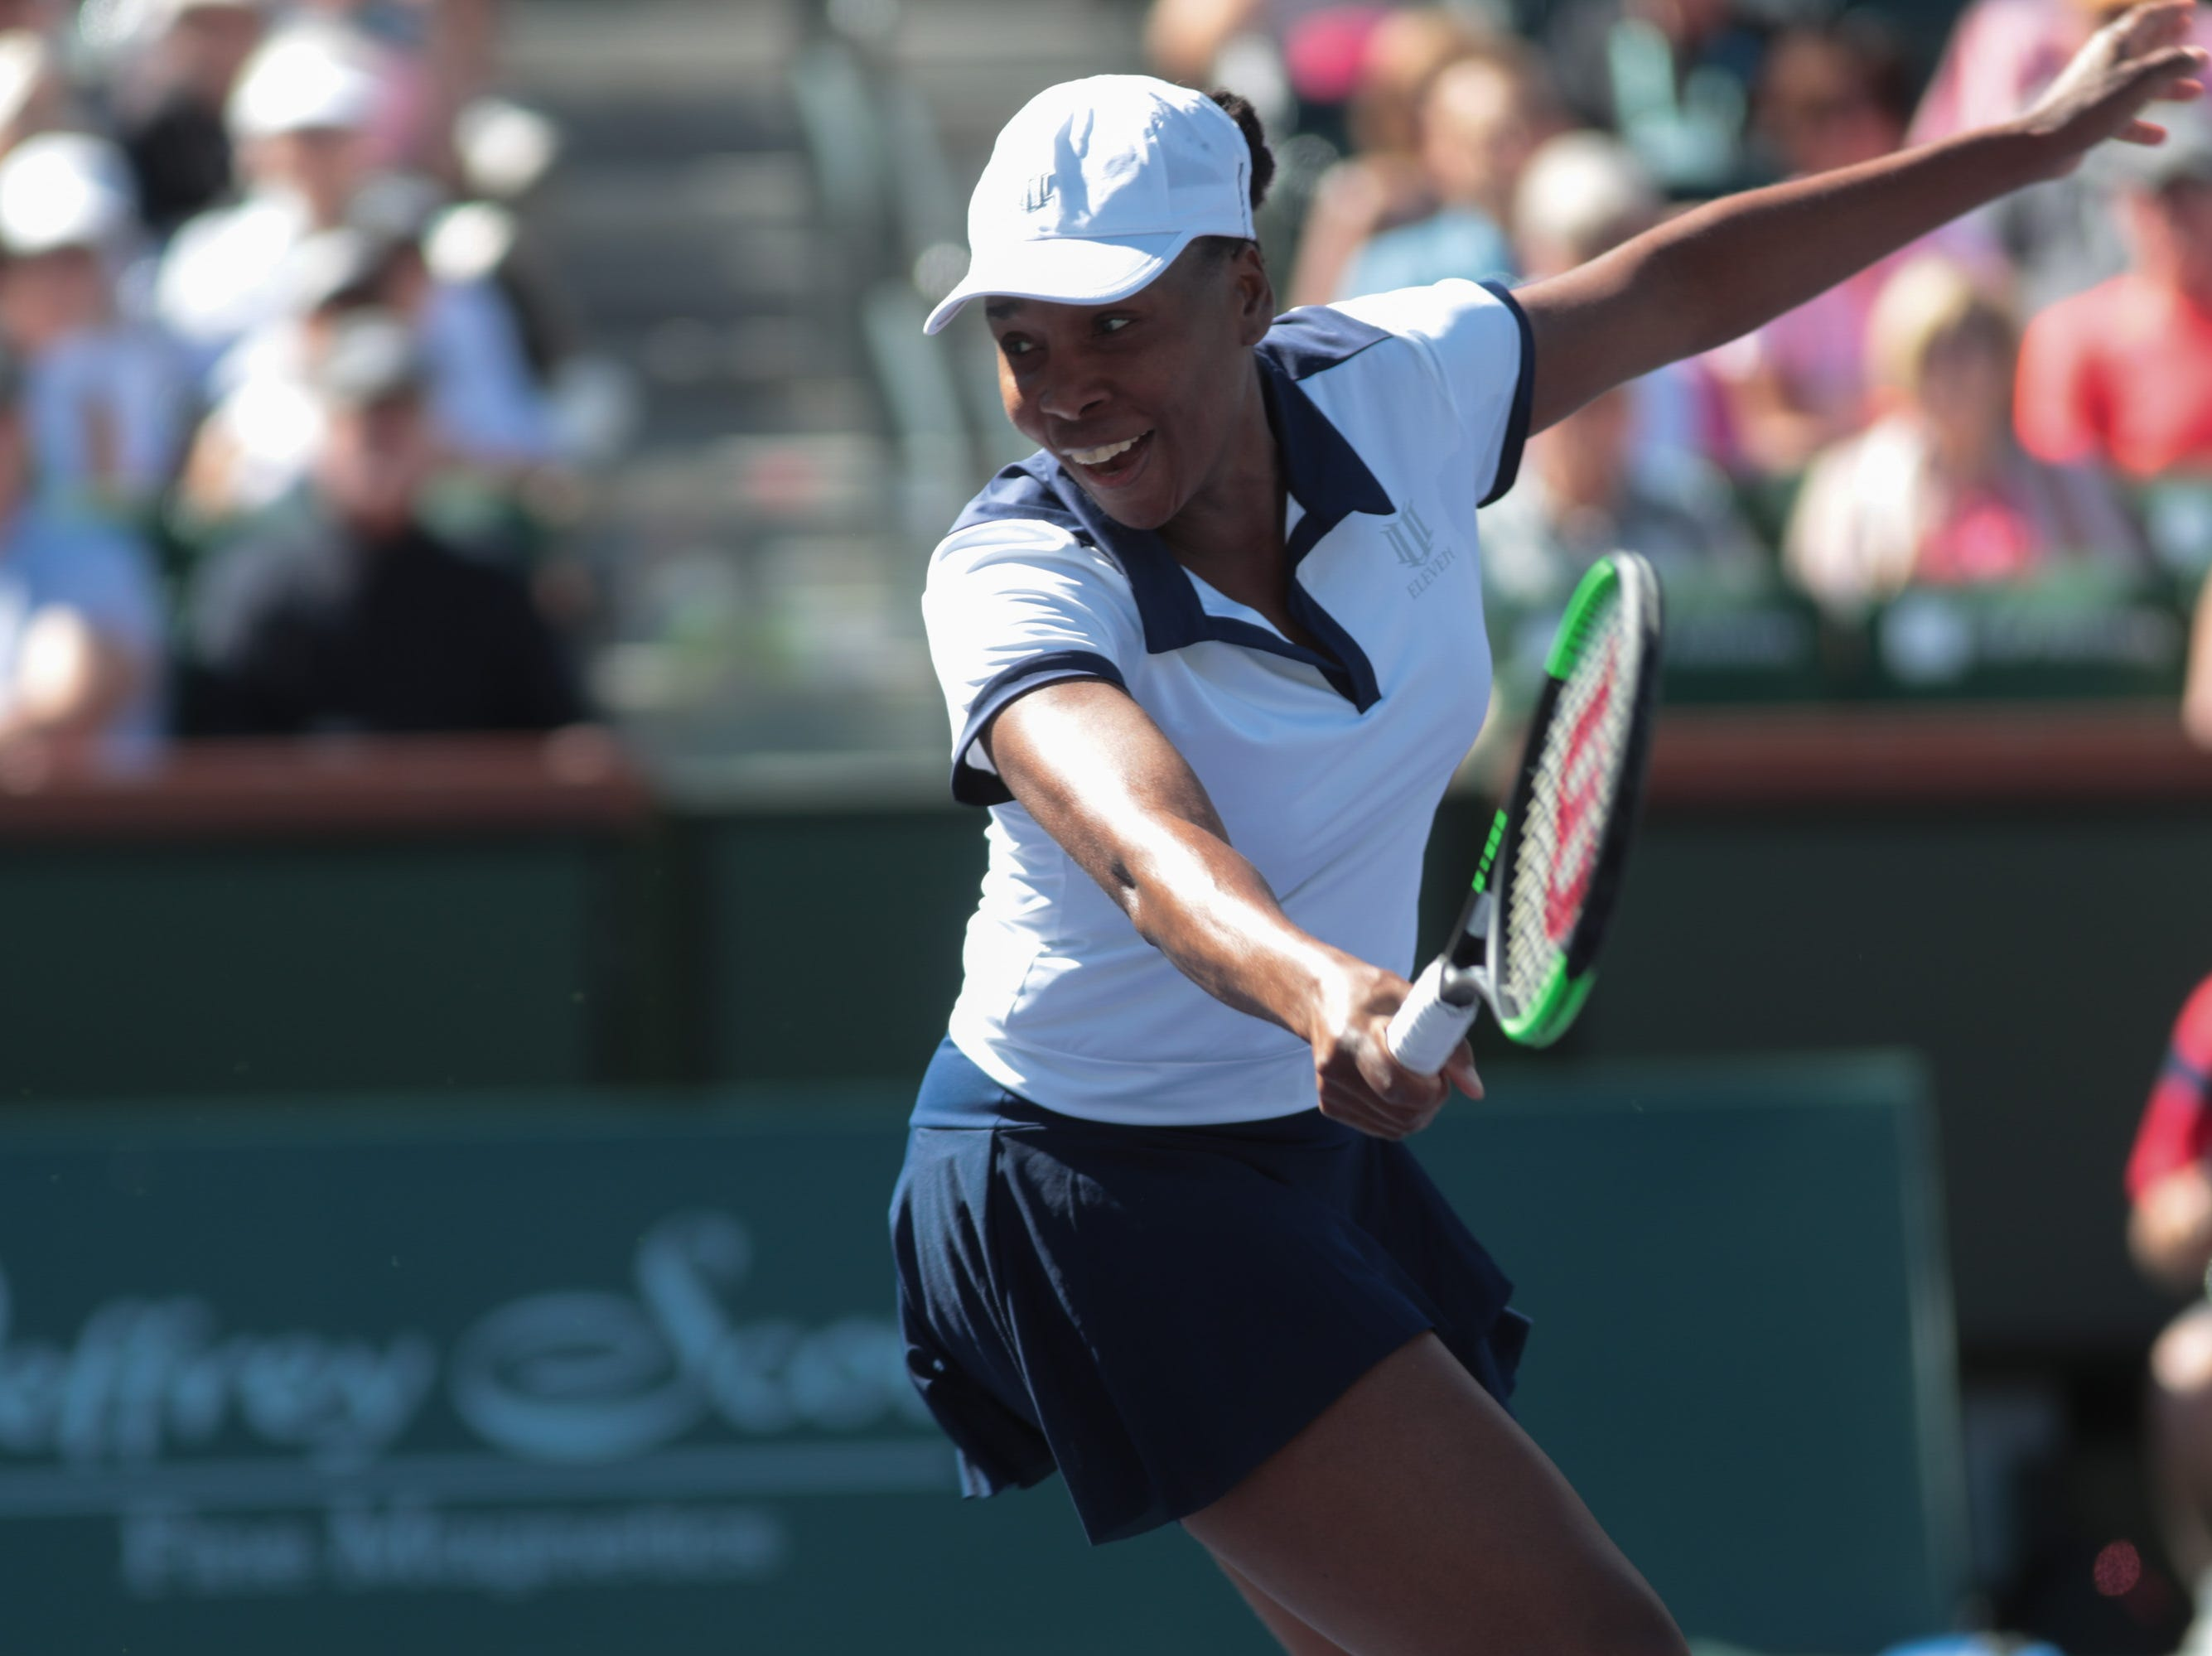 Venus Williams reacts to a passing shot from Andrea Petkovic at the BNP Paribas Open, Indian Wells, Calif., Thursday, March 7, 2019.